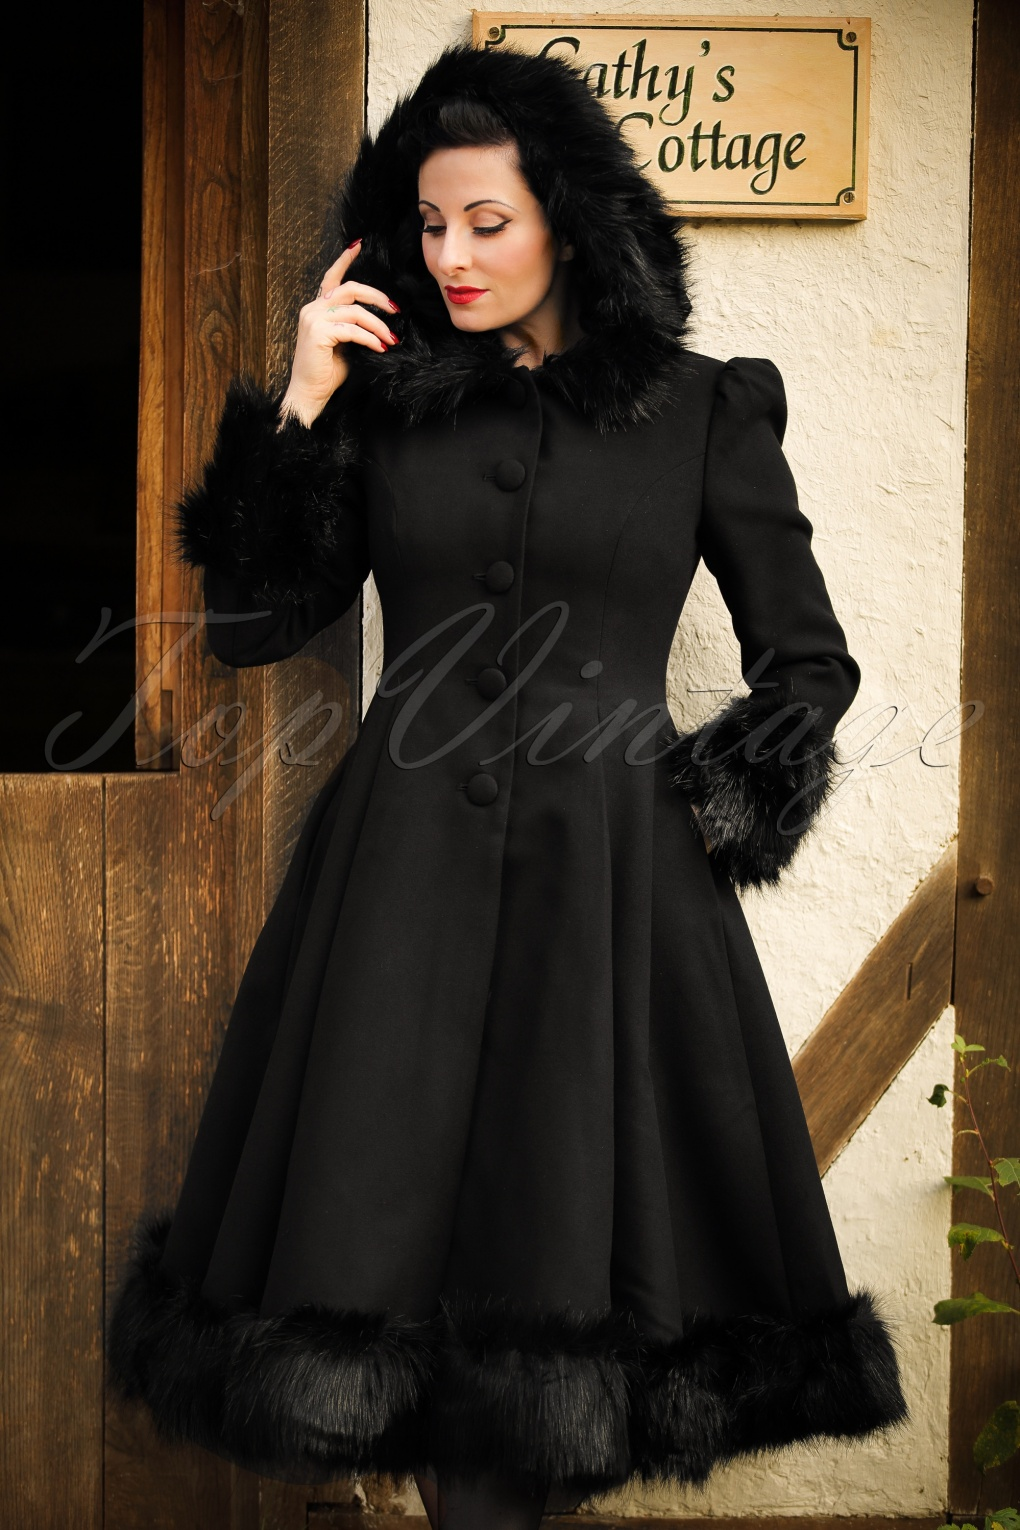 Vintage Coats & Jackets | Retro Coats and Jackets 30s Elvira Coat in Black £125.67 AT vintagedancer.com